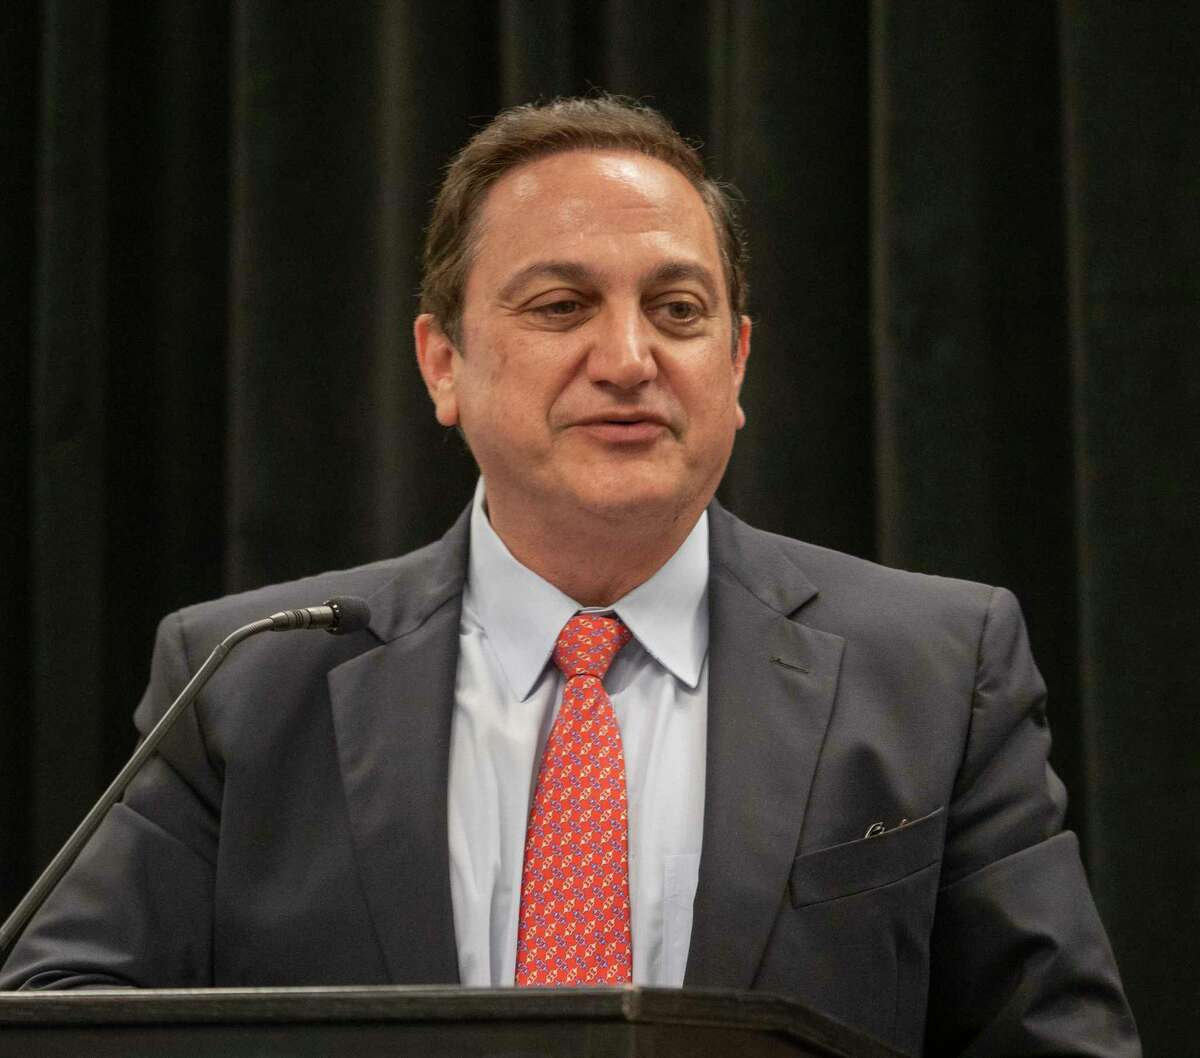 Steven Munisteri talks about the history of the Republican Party in Texas as well as where he sees the future of the party 06/21/2021 at the Midland Republican National Hispanic Assembly luncheon. Tim Fischer/Reporter-Telegram